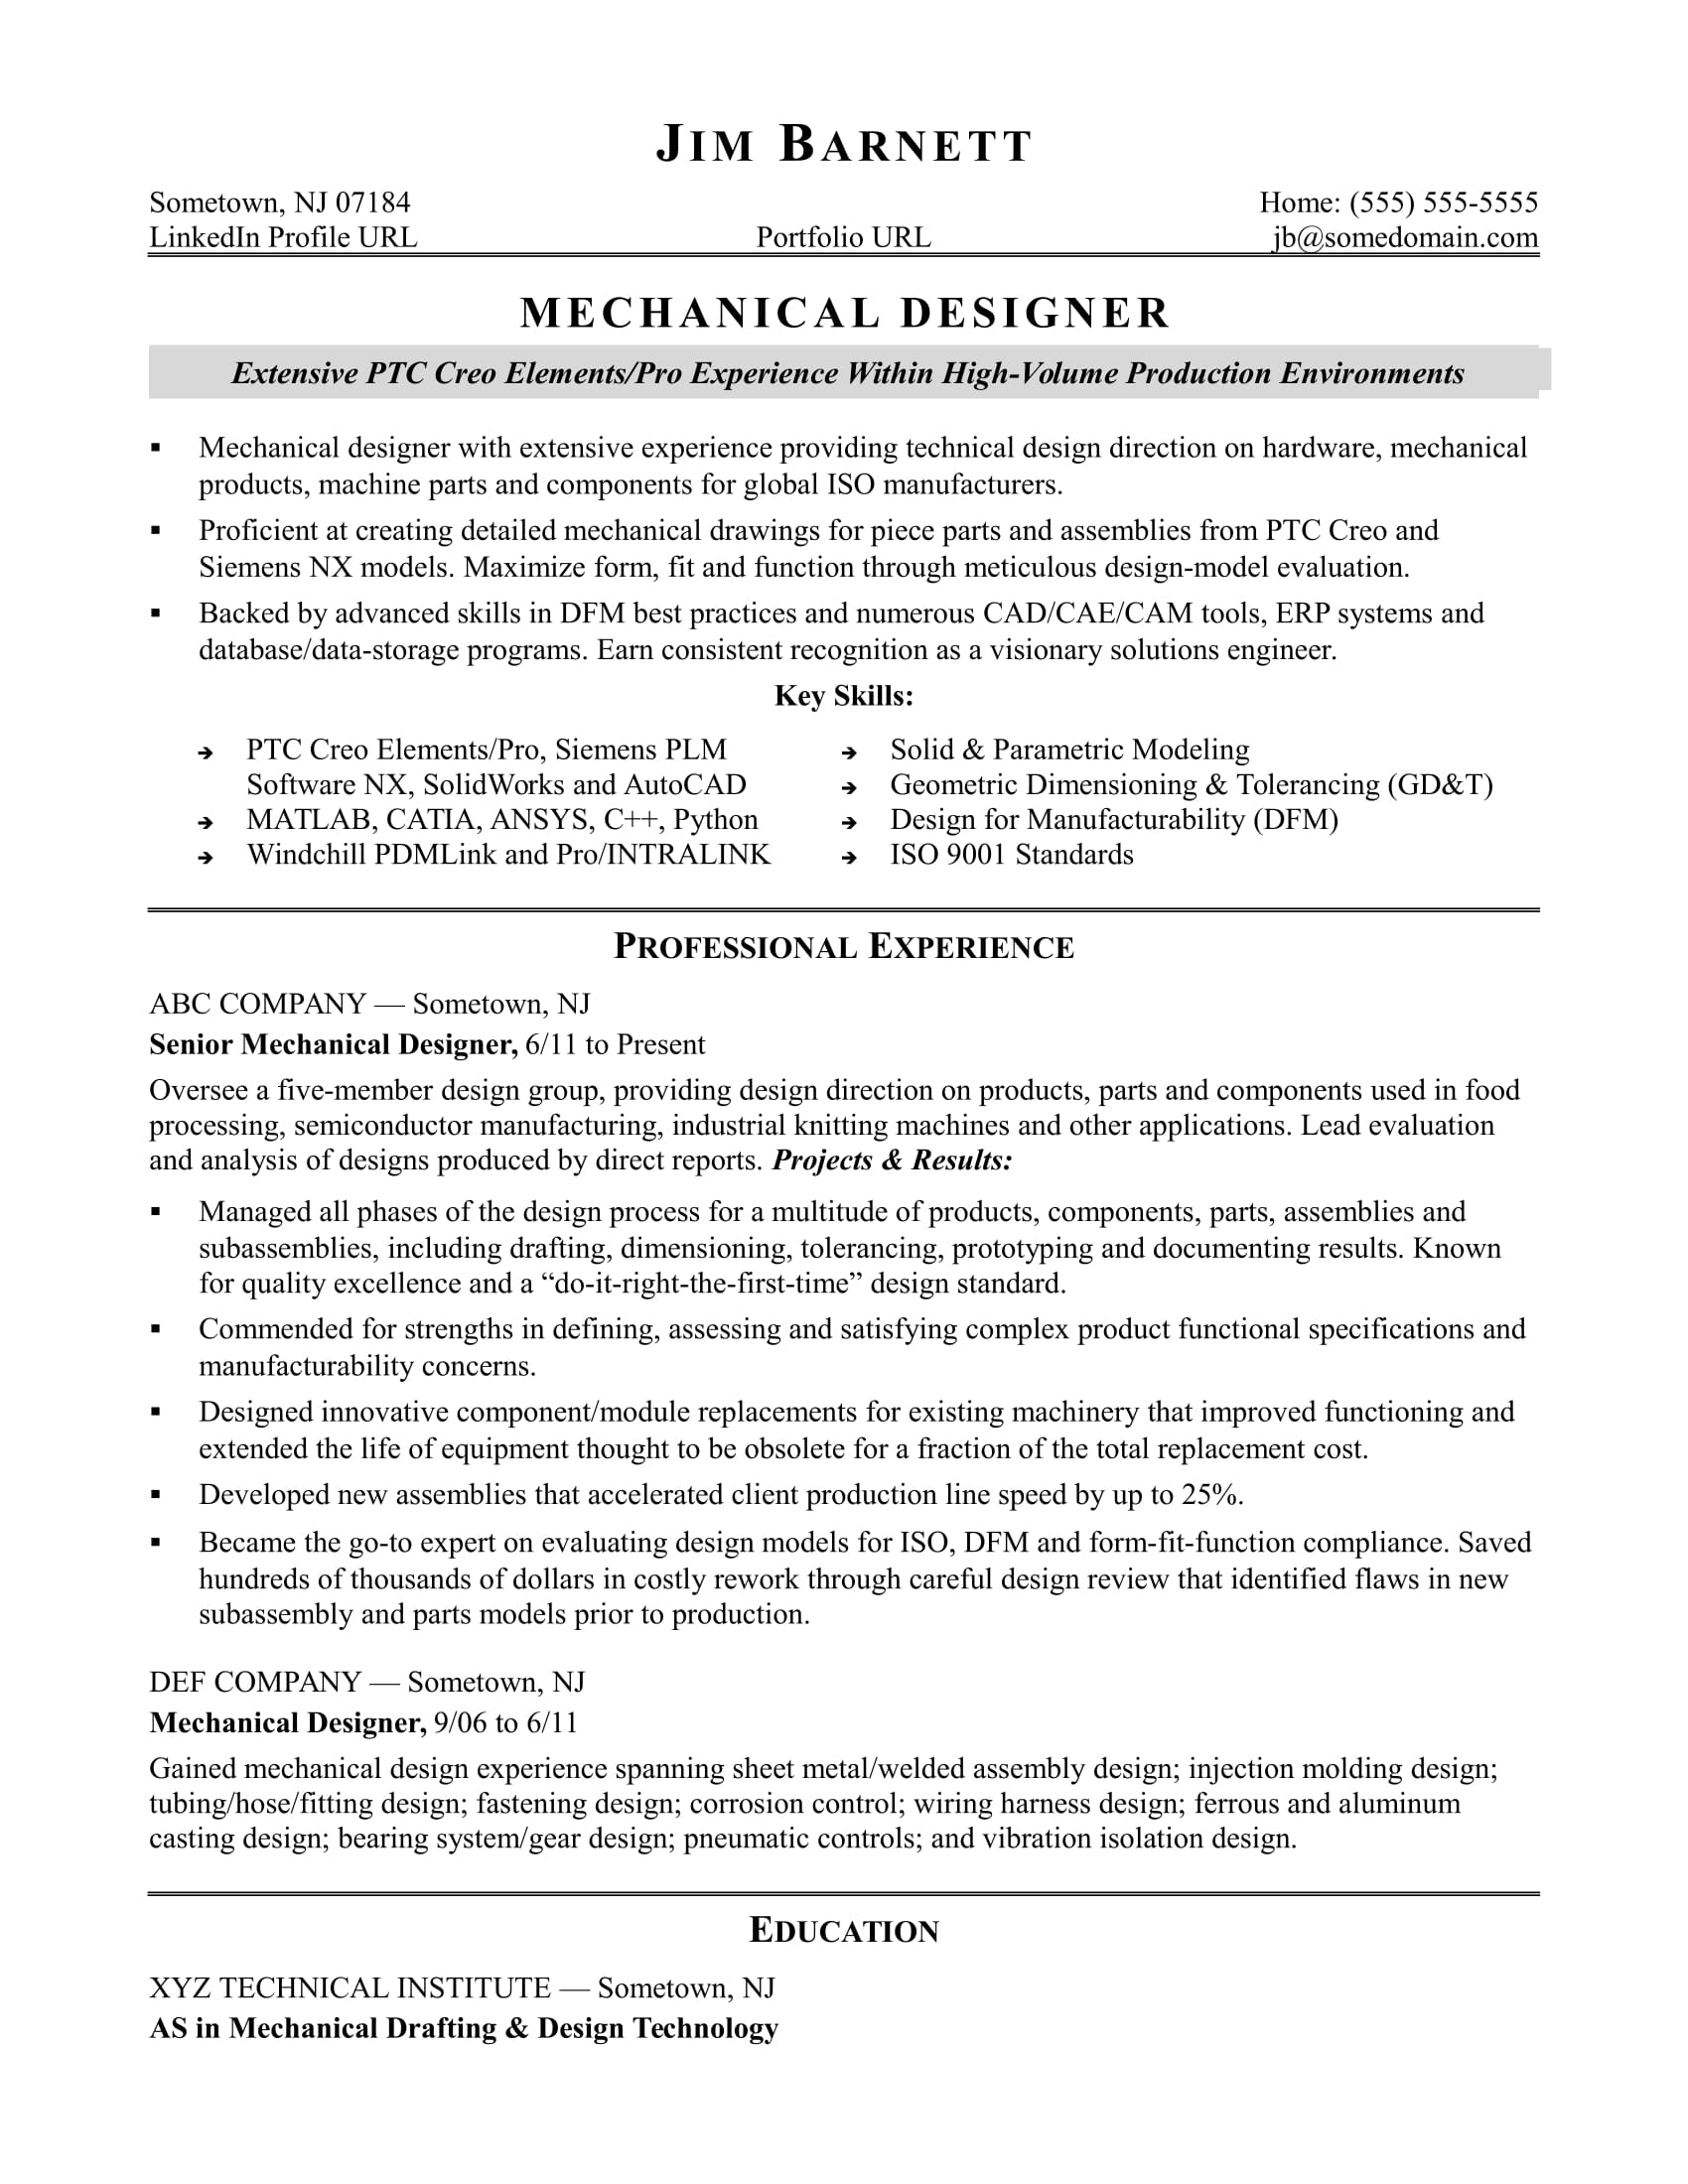 Sample Resume for an Experienced Mechanical Designer  Monstercom